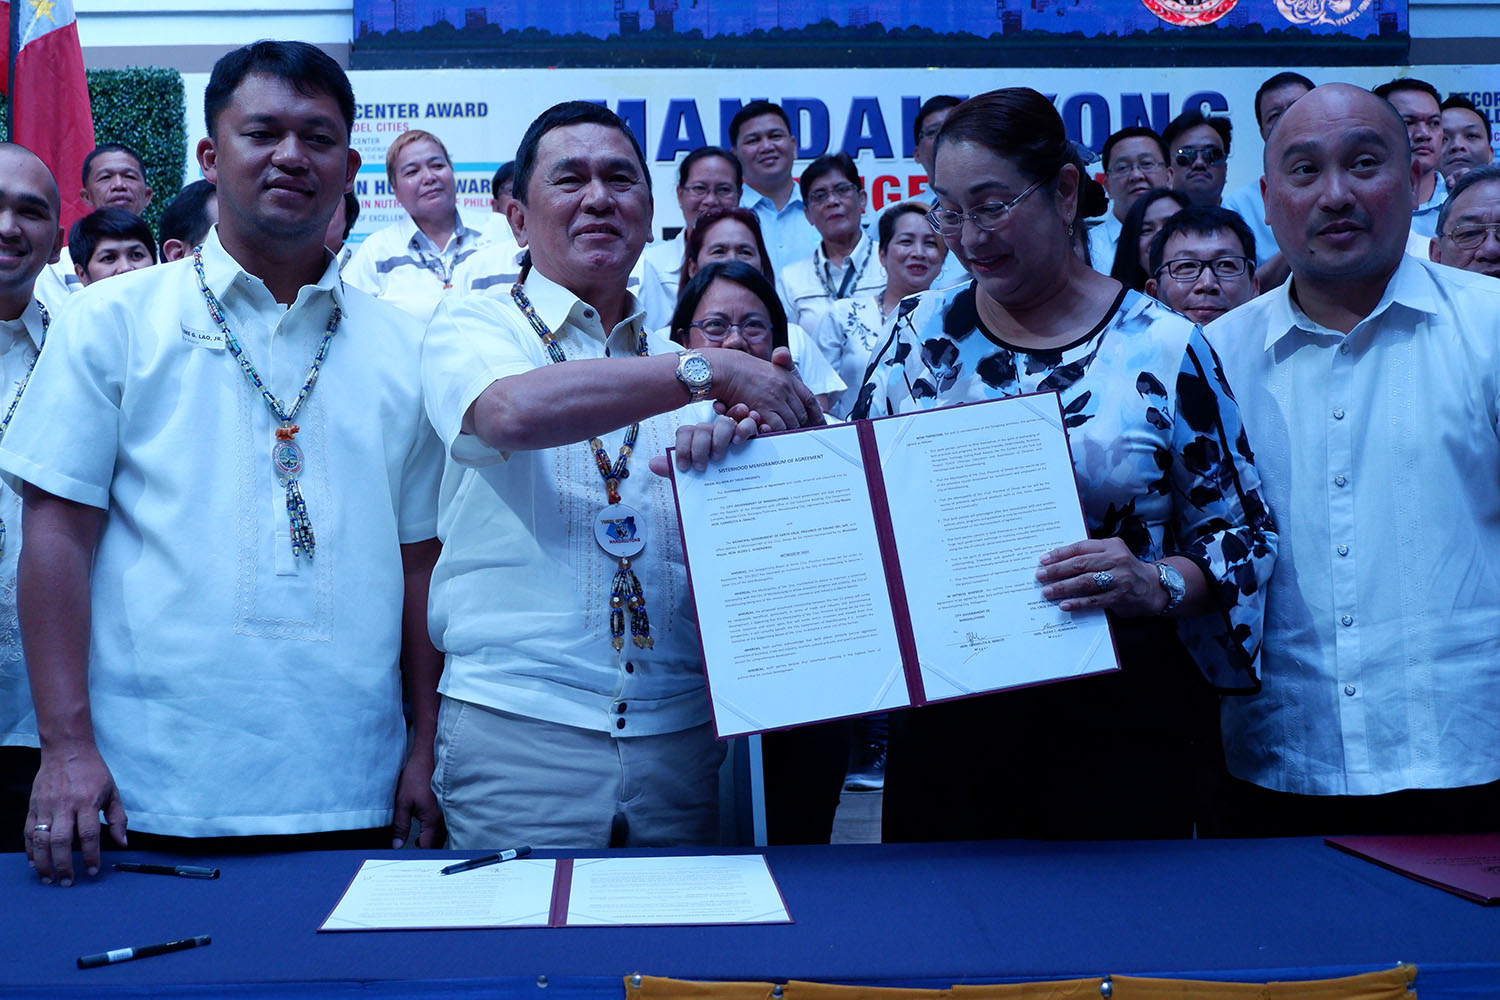 Municipality of Sta. Cruz and Mandaluyong City inks Sisterhood Pact